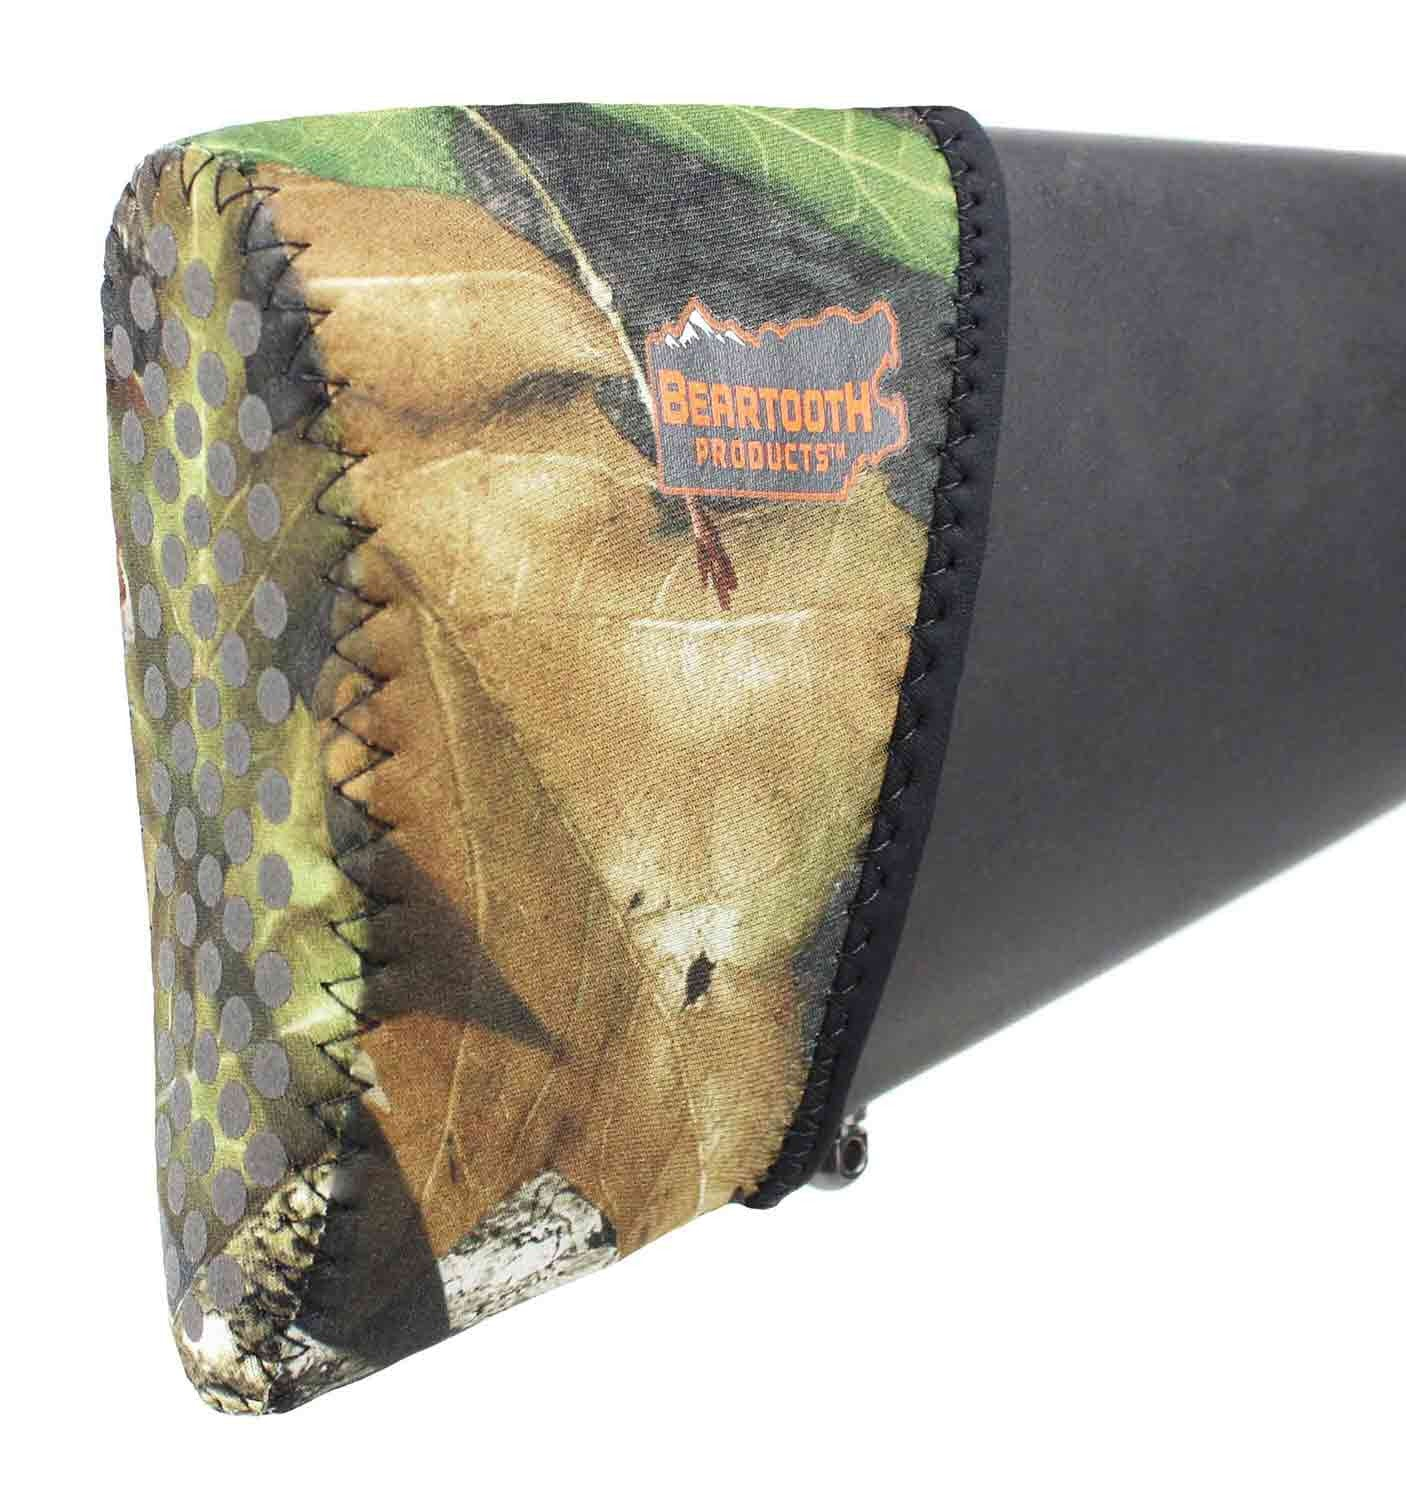 **NEW** RECOIL PAD KIT 2.0 in Mossy Oak Break-up